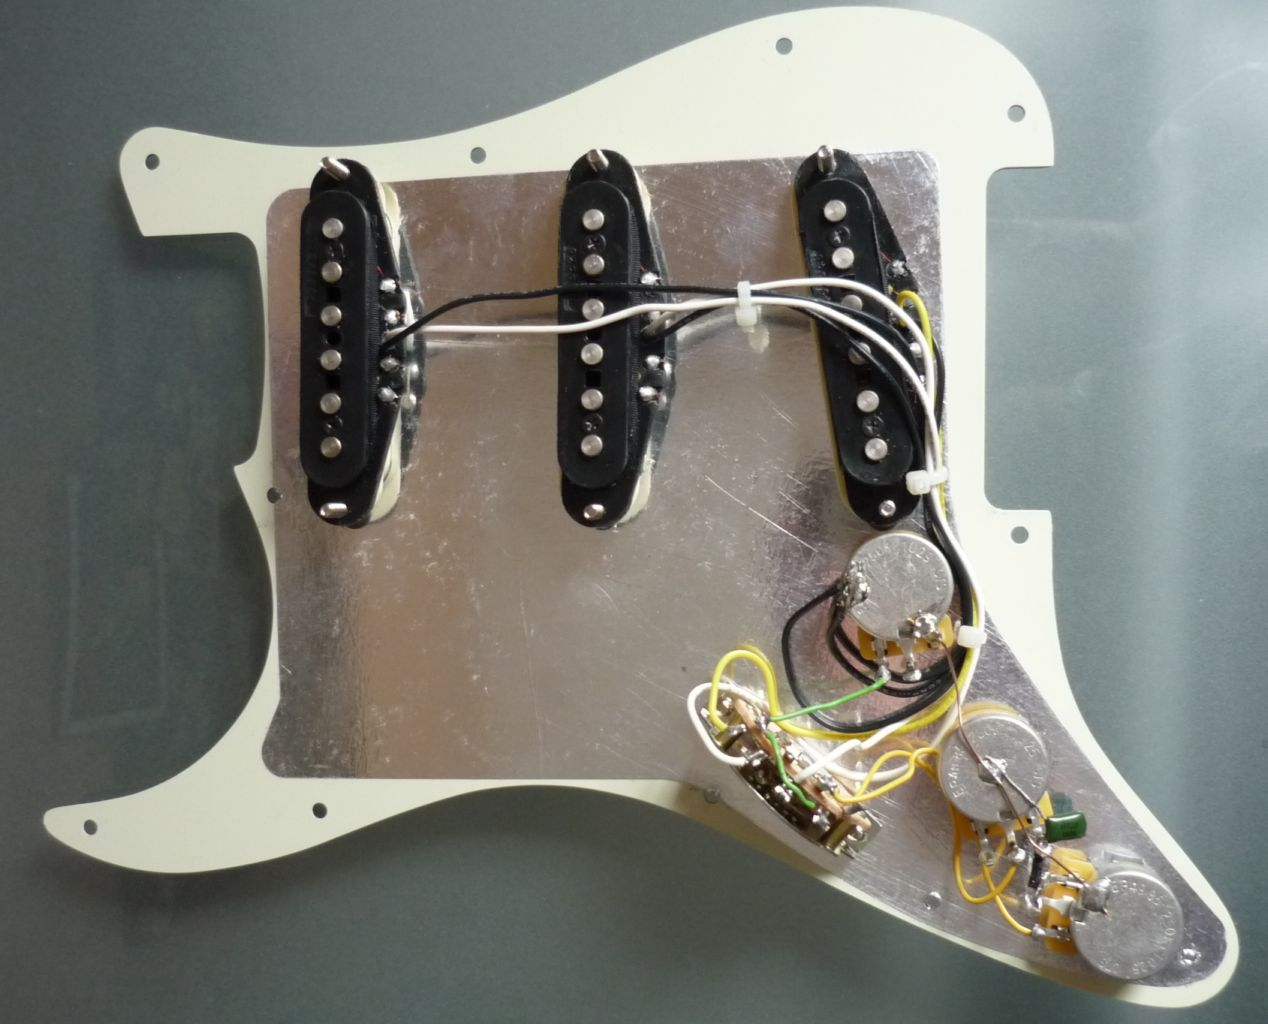 Fender American Standard Strat Wiring Diagram Quick Start Guide Of Stratocaster Noiseless Pickups Guitar Diagrams Odicis